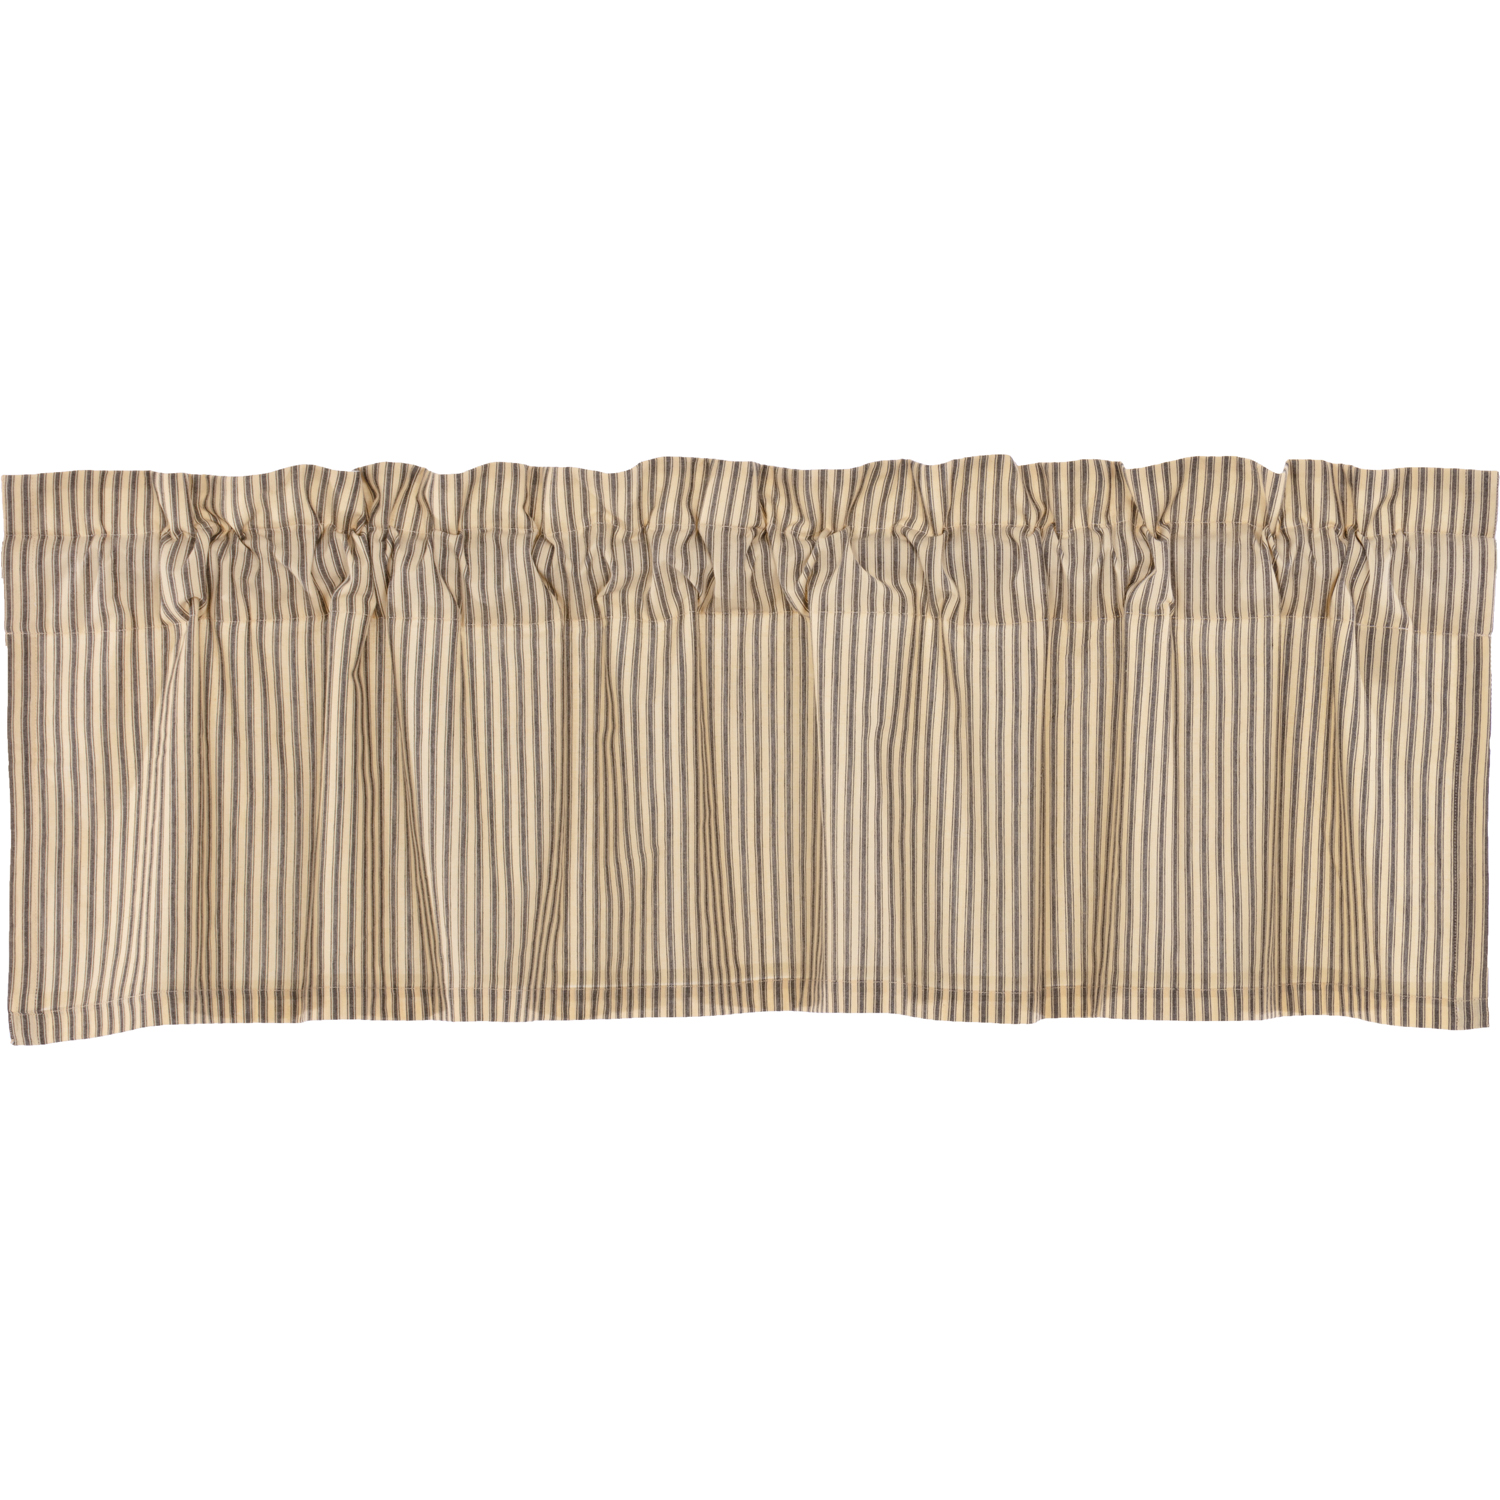 Sawyer Mill Charcoal Ticking Stripe Valance 16x60